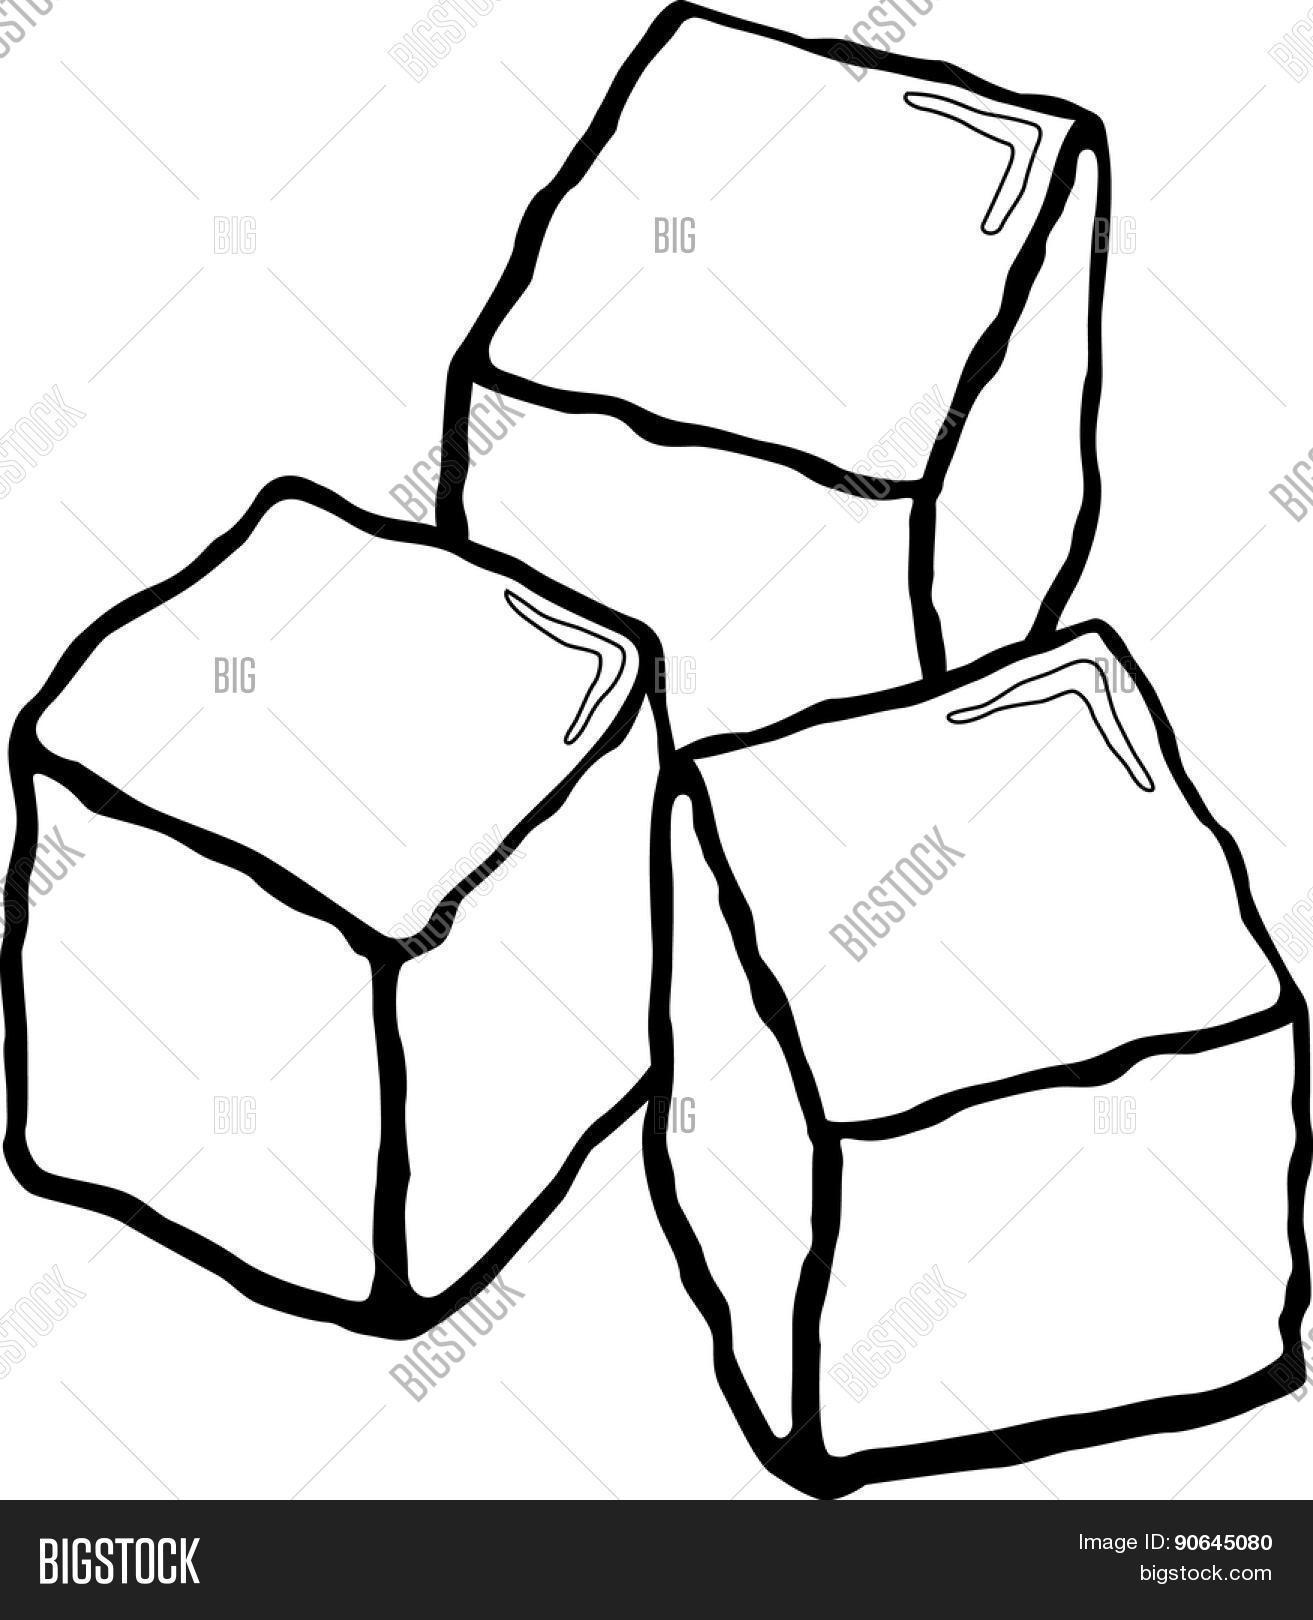 ice clipart black and white 4 clipart station rh clipartstation com ice clipart gif ice clipart vector